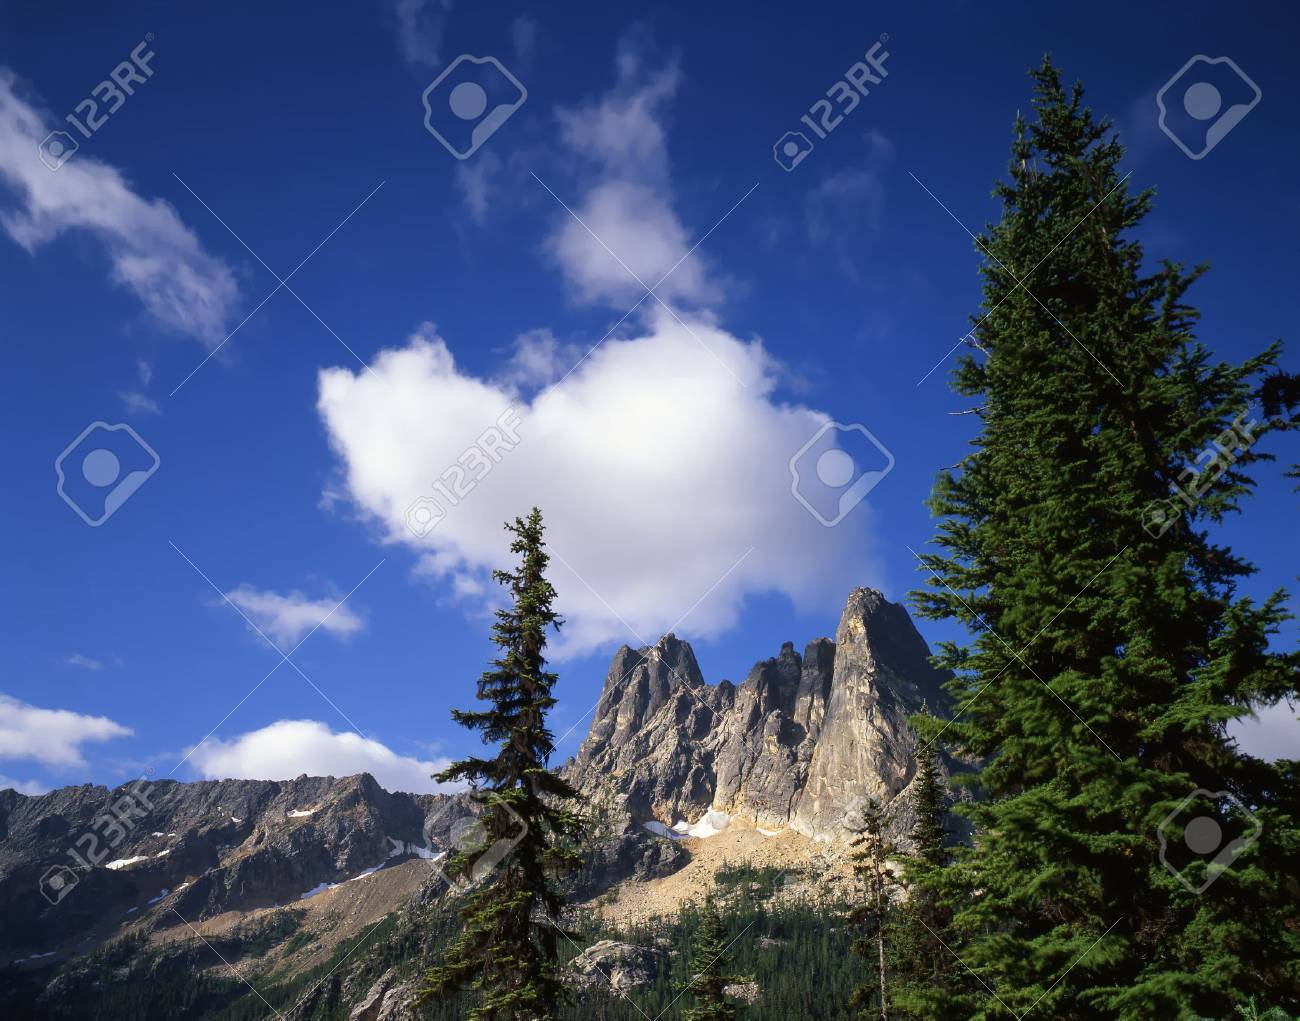 Liberty Bell Mountain in the Okanogan National Forest of Washington State. Stock Photo - 717888